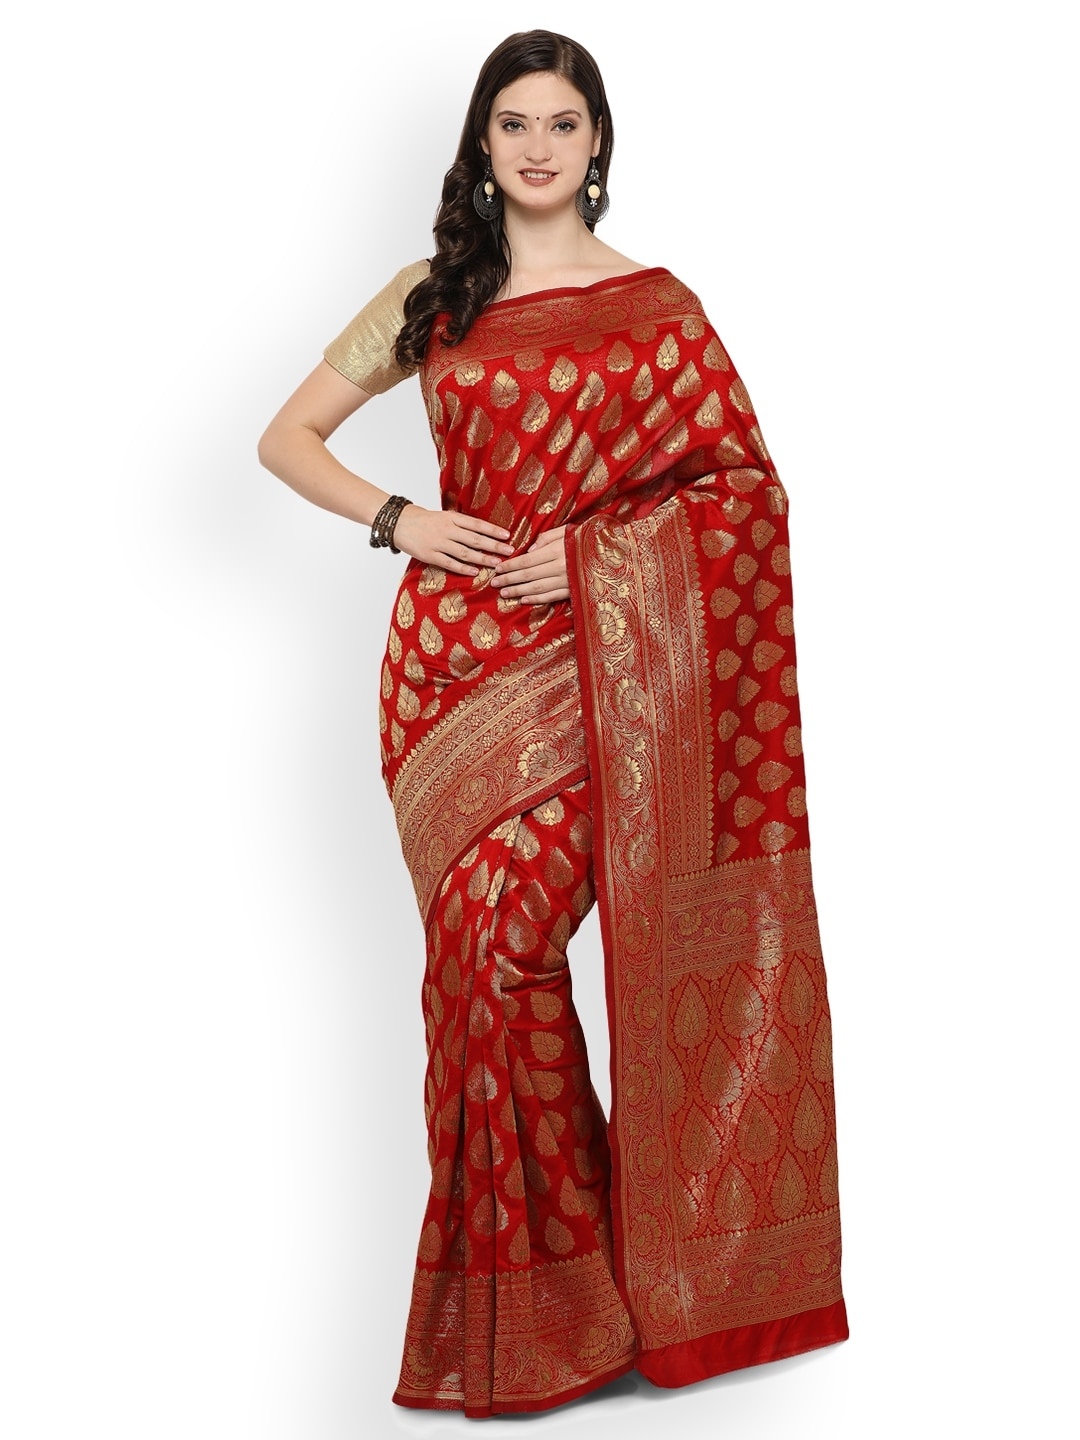 75733889294c0 Red Saree - Buy Red Color Fashion Sarees Online